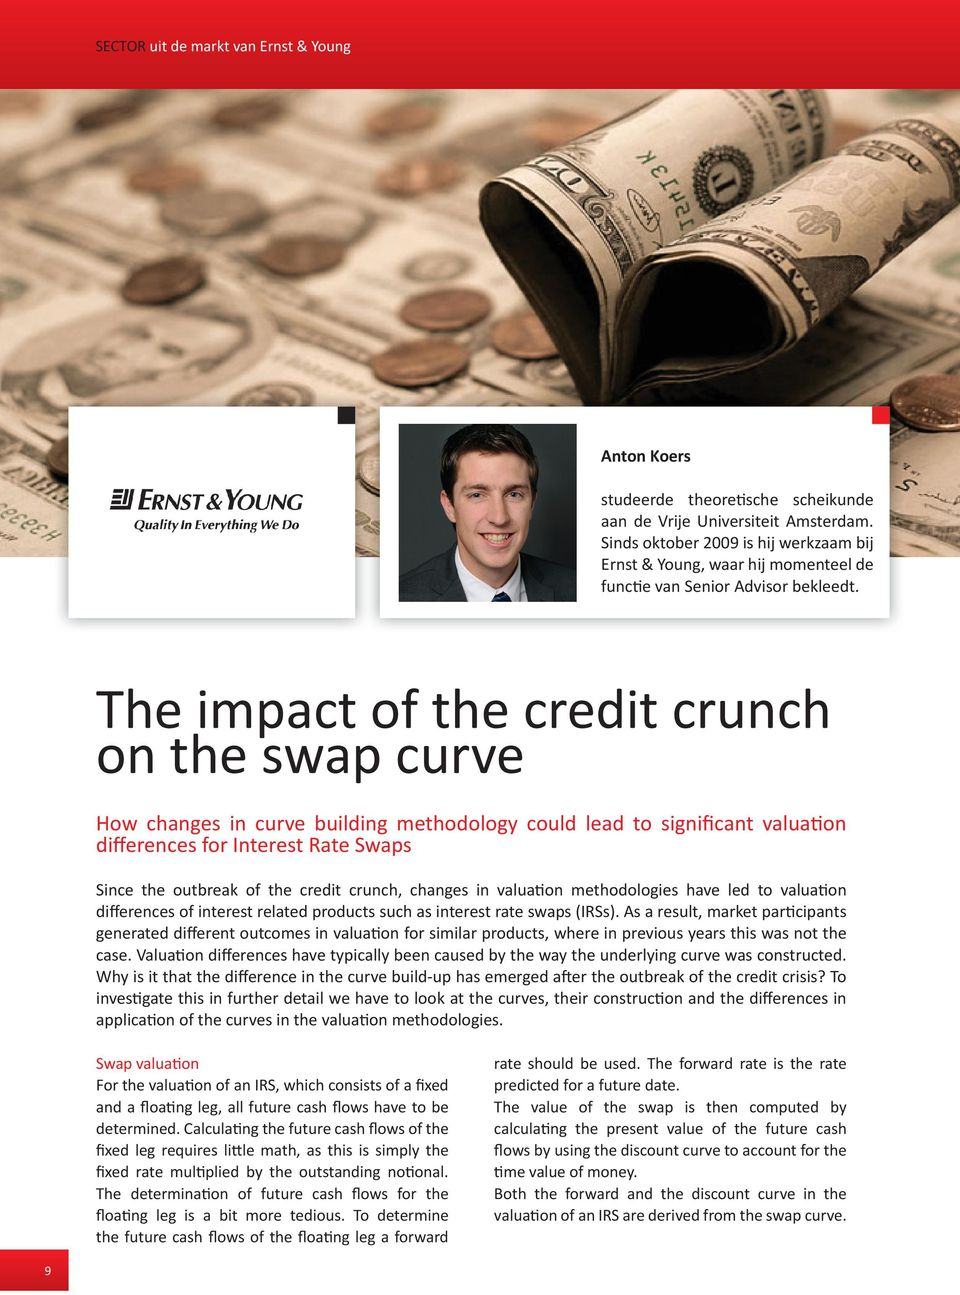 The impact of the credit crunch on the swap curve How changes in curve building methodology could lead to significant valuation differences for Interest Rate Swaps Since the outbreak of the credit